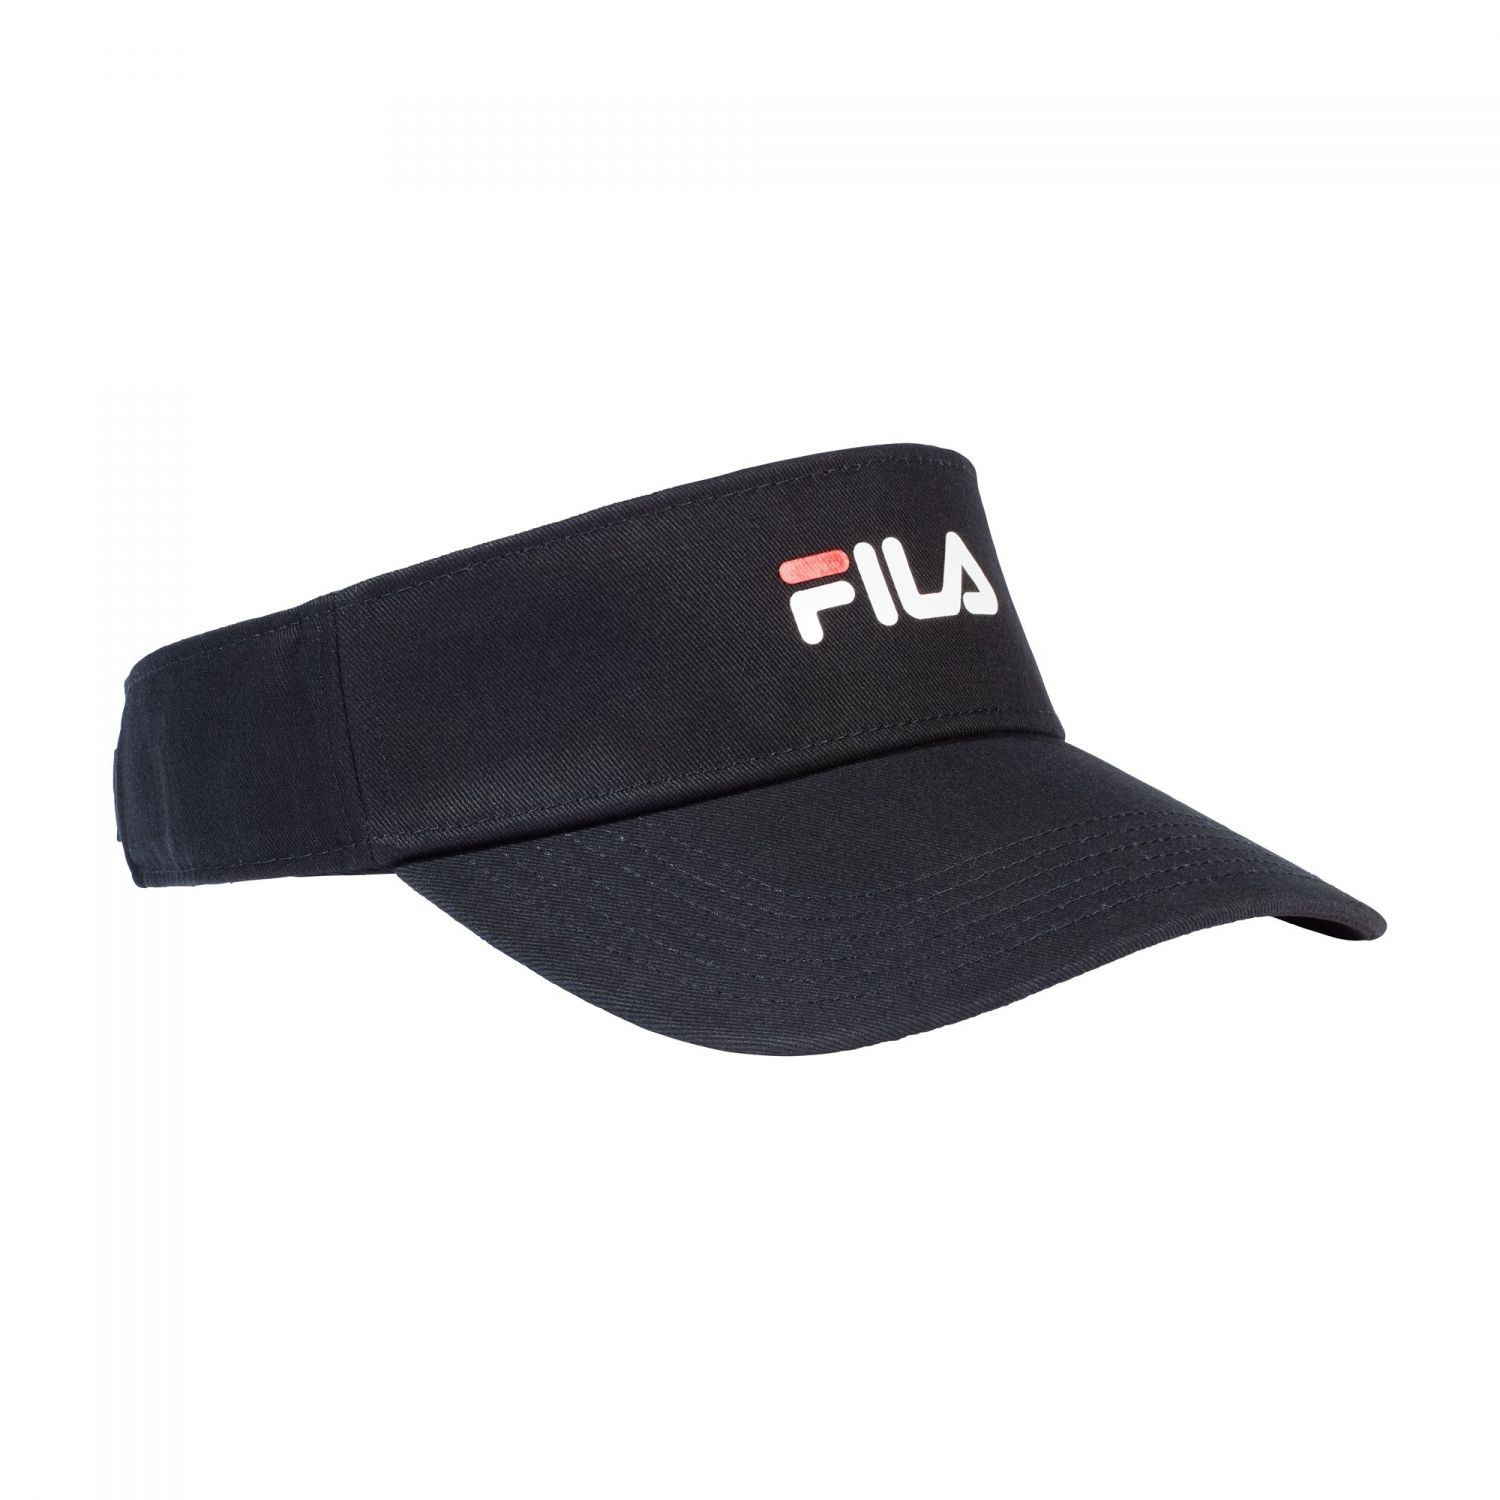 ca42480383a493 Fila Visor - black | FILA Official